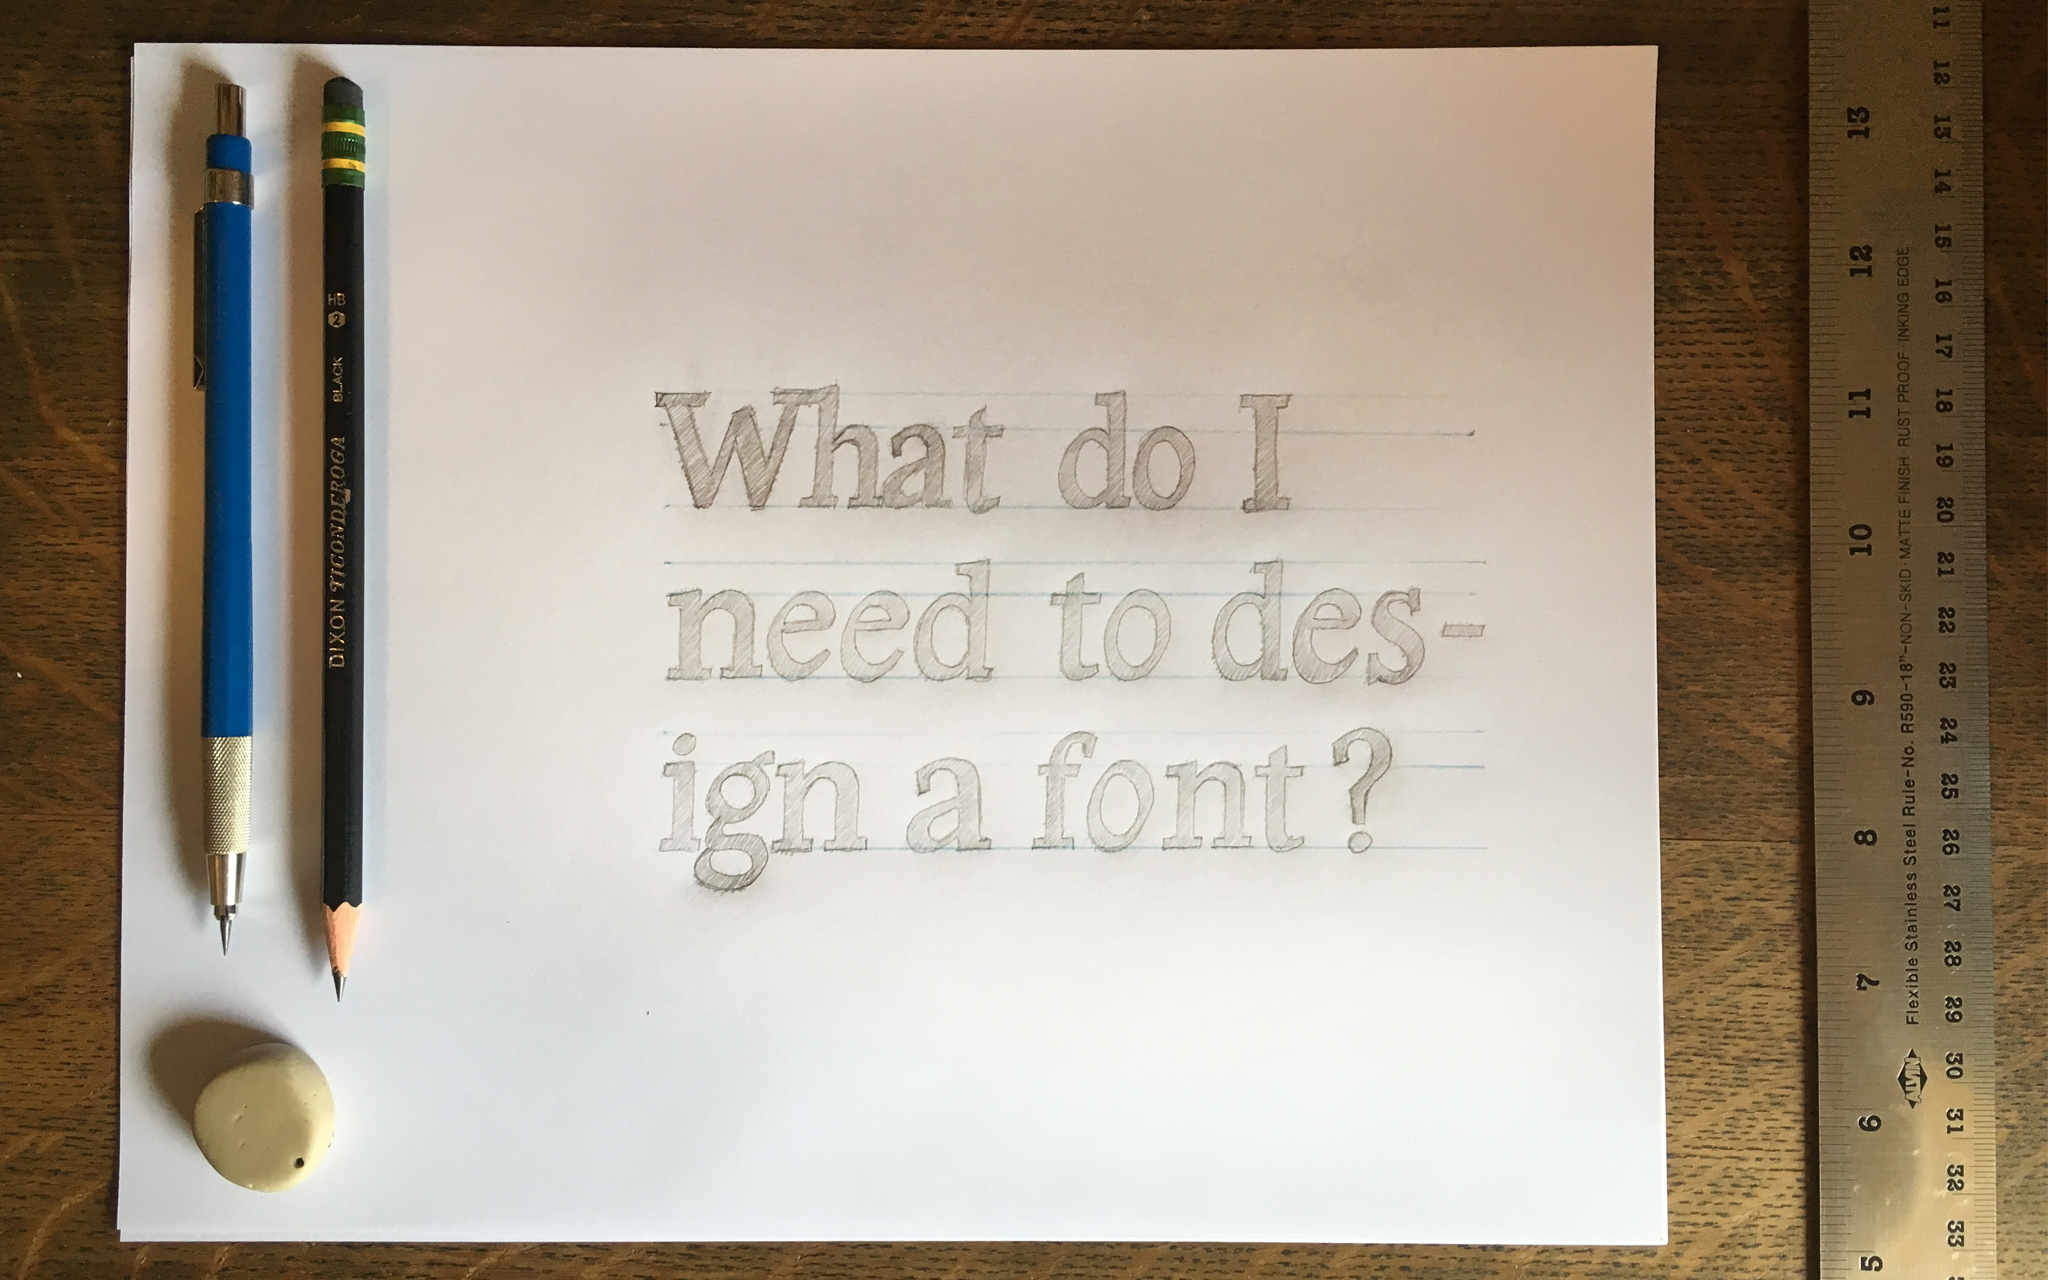 What Do I Need to Design a Font?